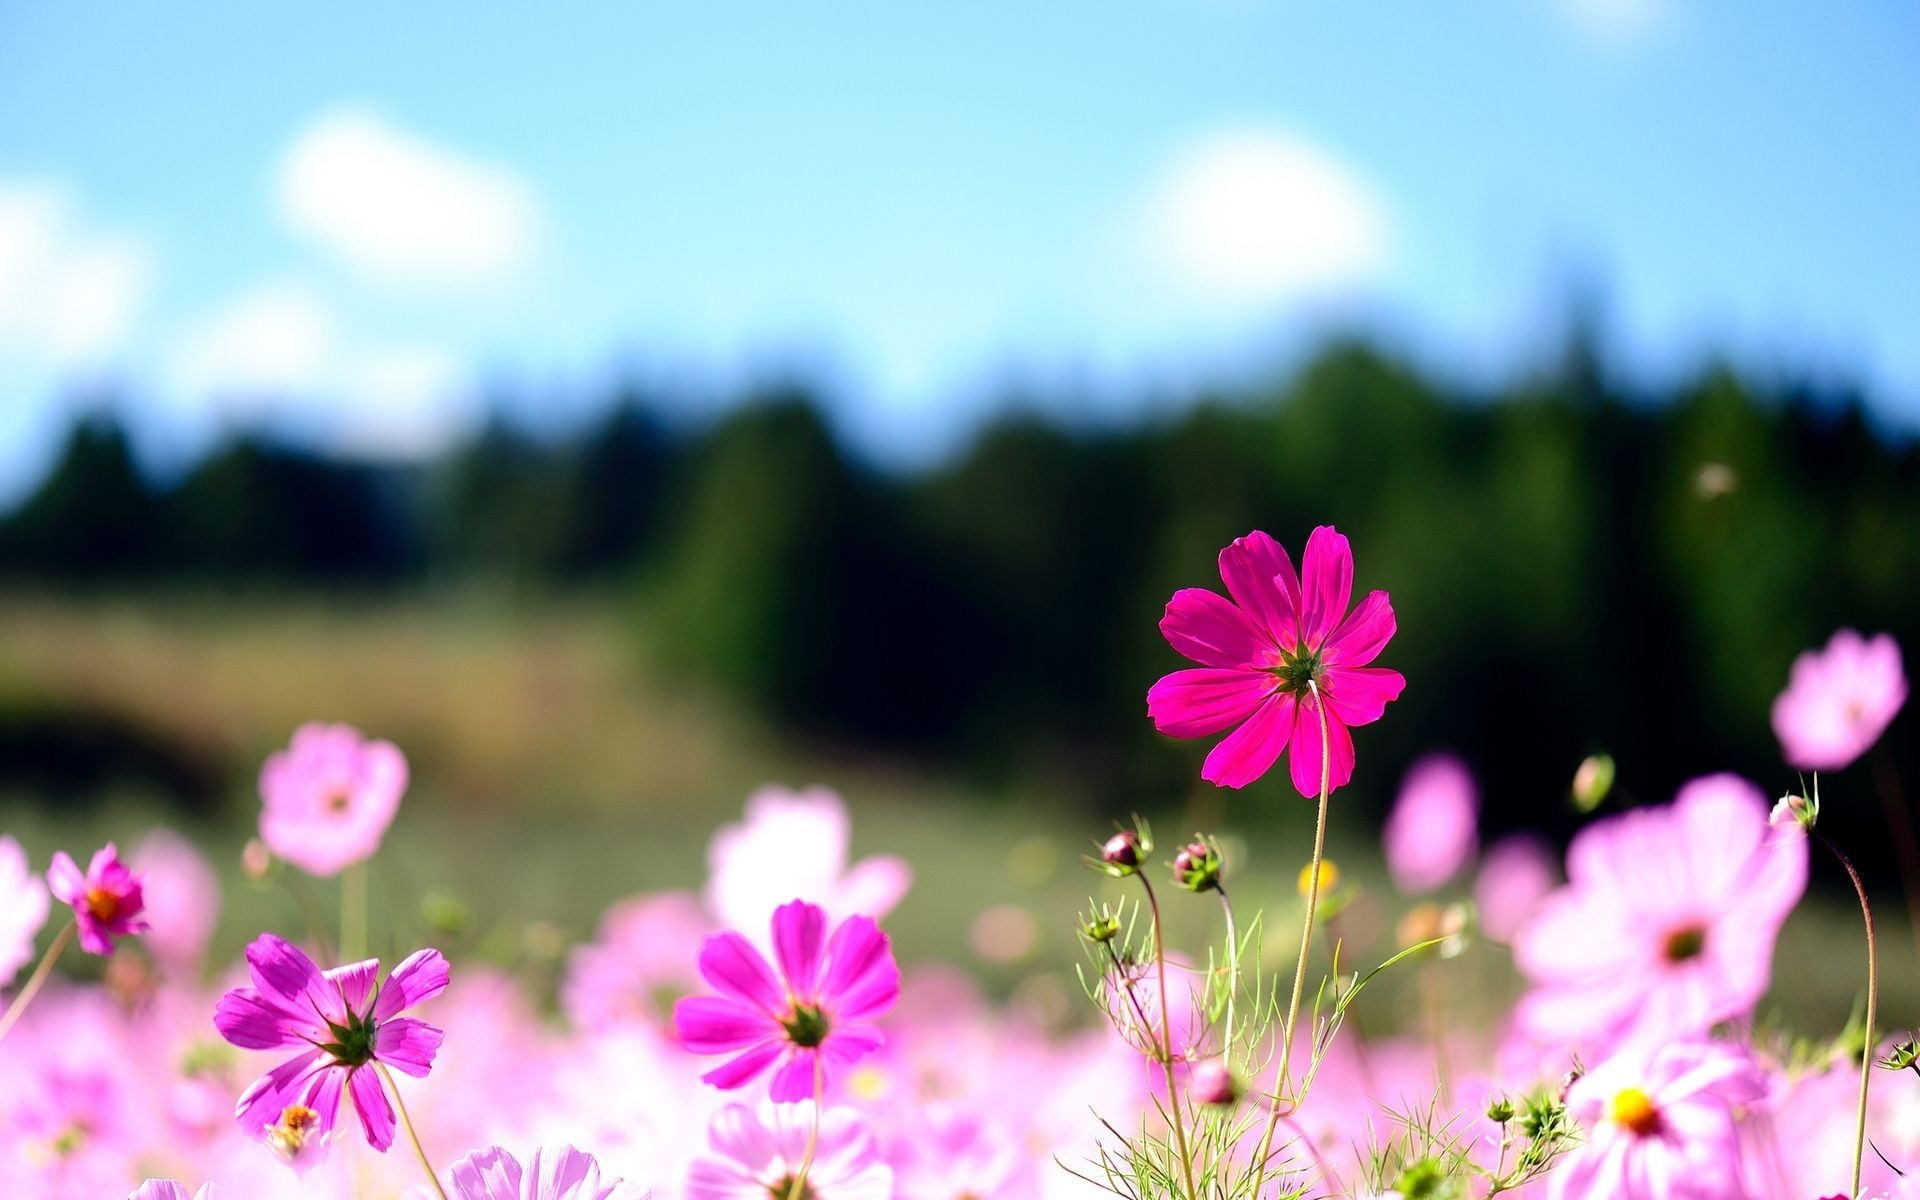 free flowers for desktop background full hd pics widescreen flower